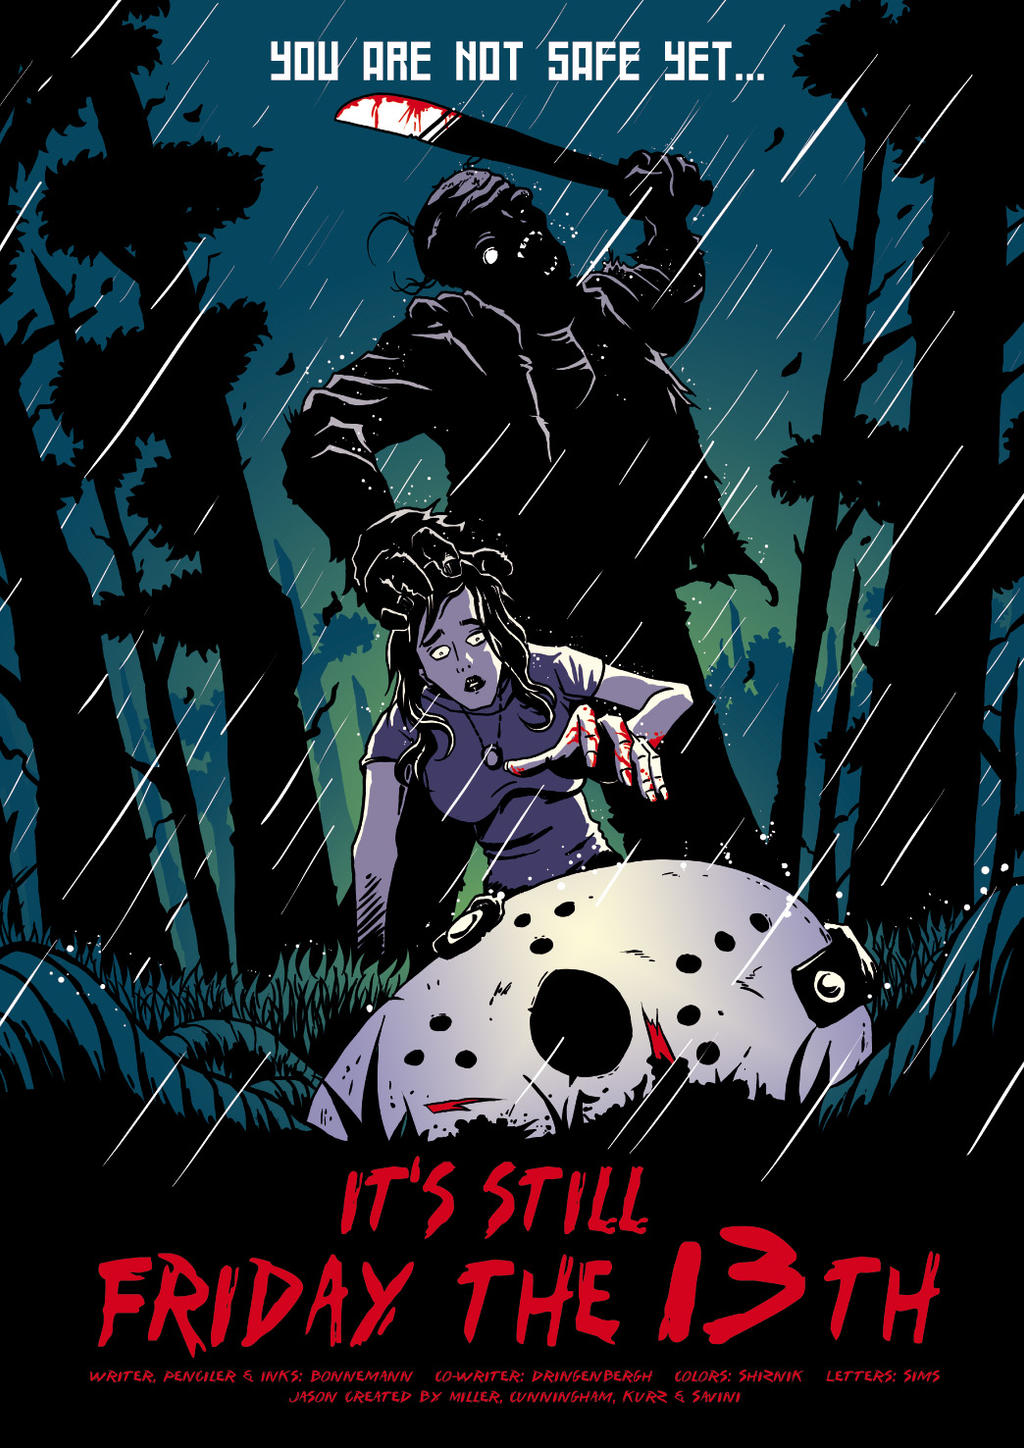 Friday the 13th 3 by abonny on DeviantArt